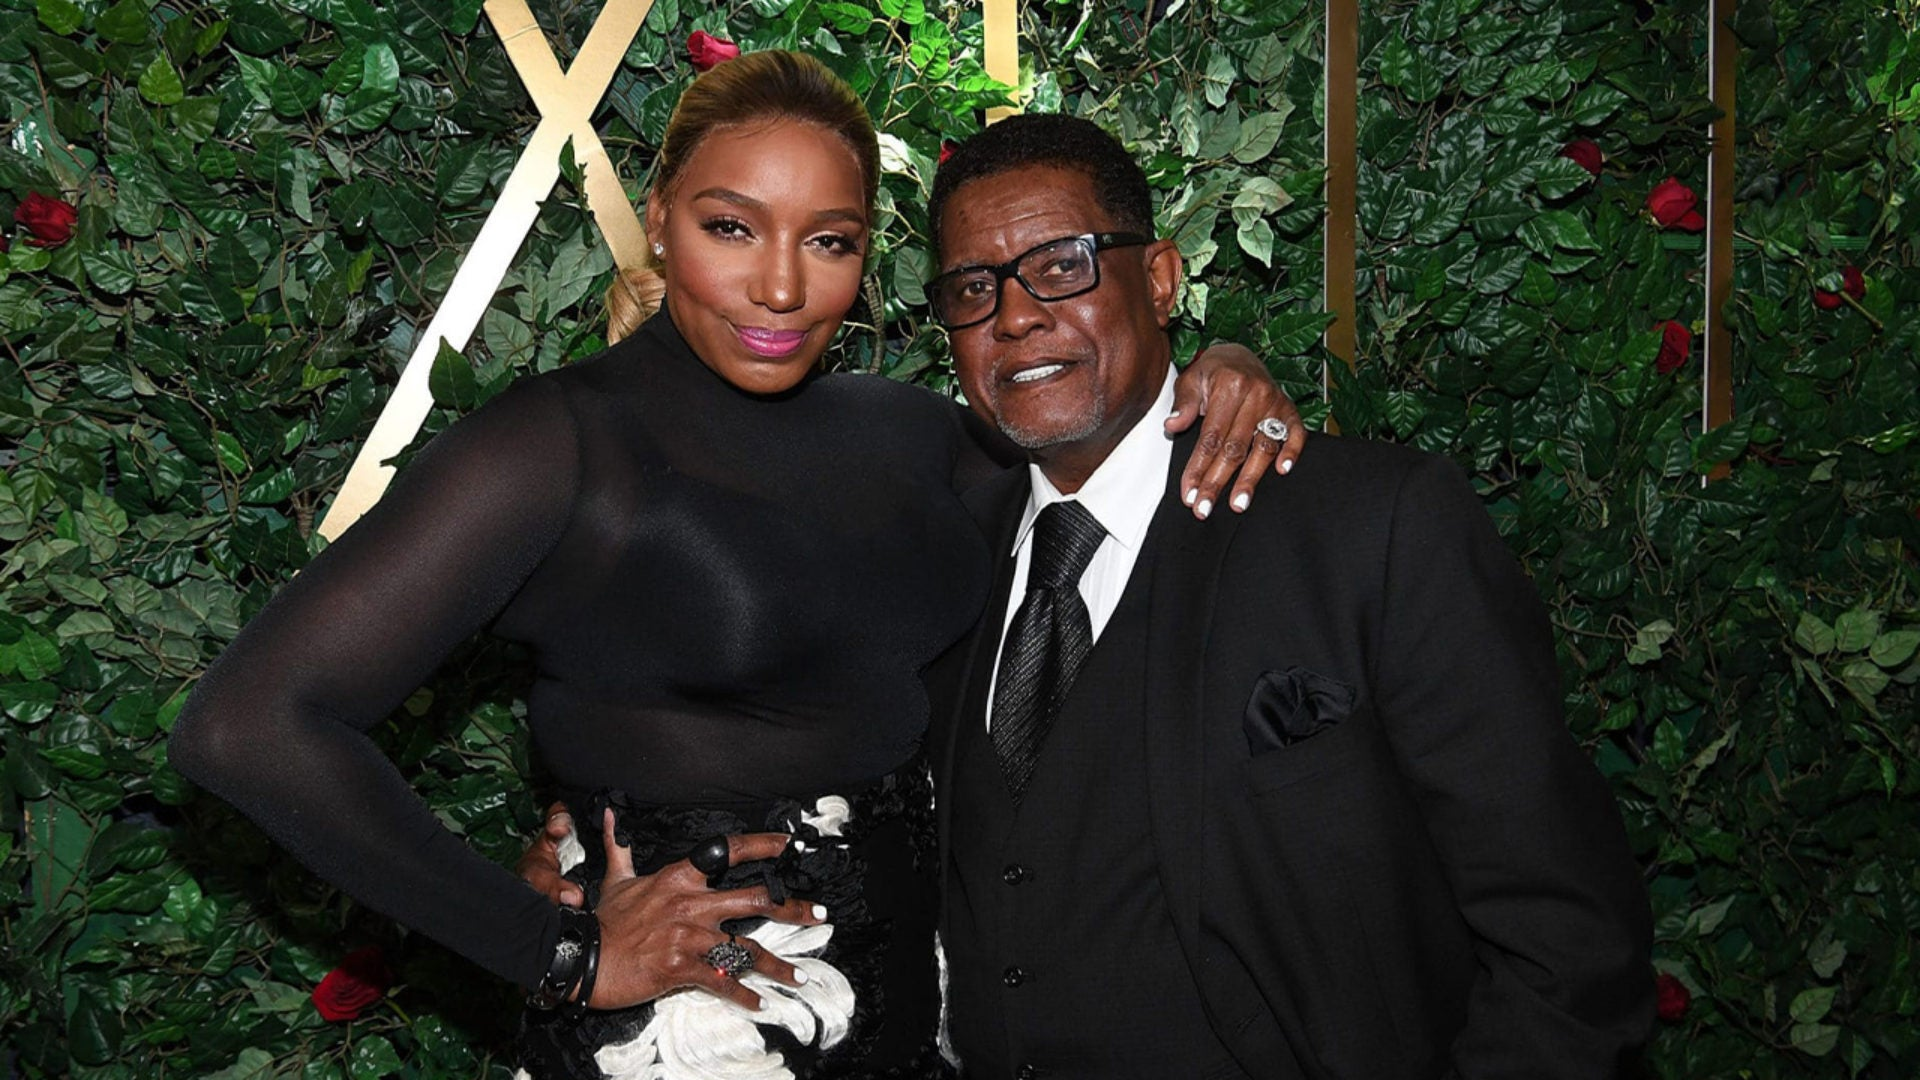 NeNe Leakes Makes Fans Excited With Amazing Videos Featuring Gregg Leakes For Their 23rd Anniversary